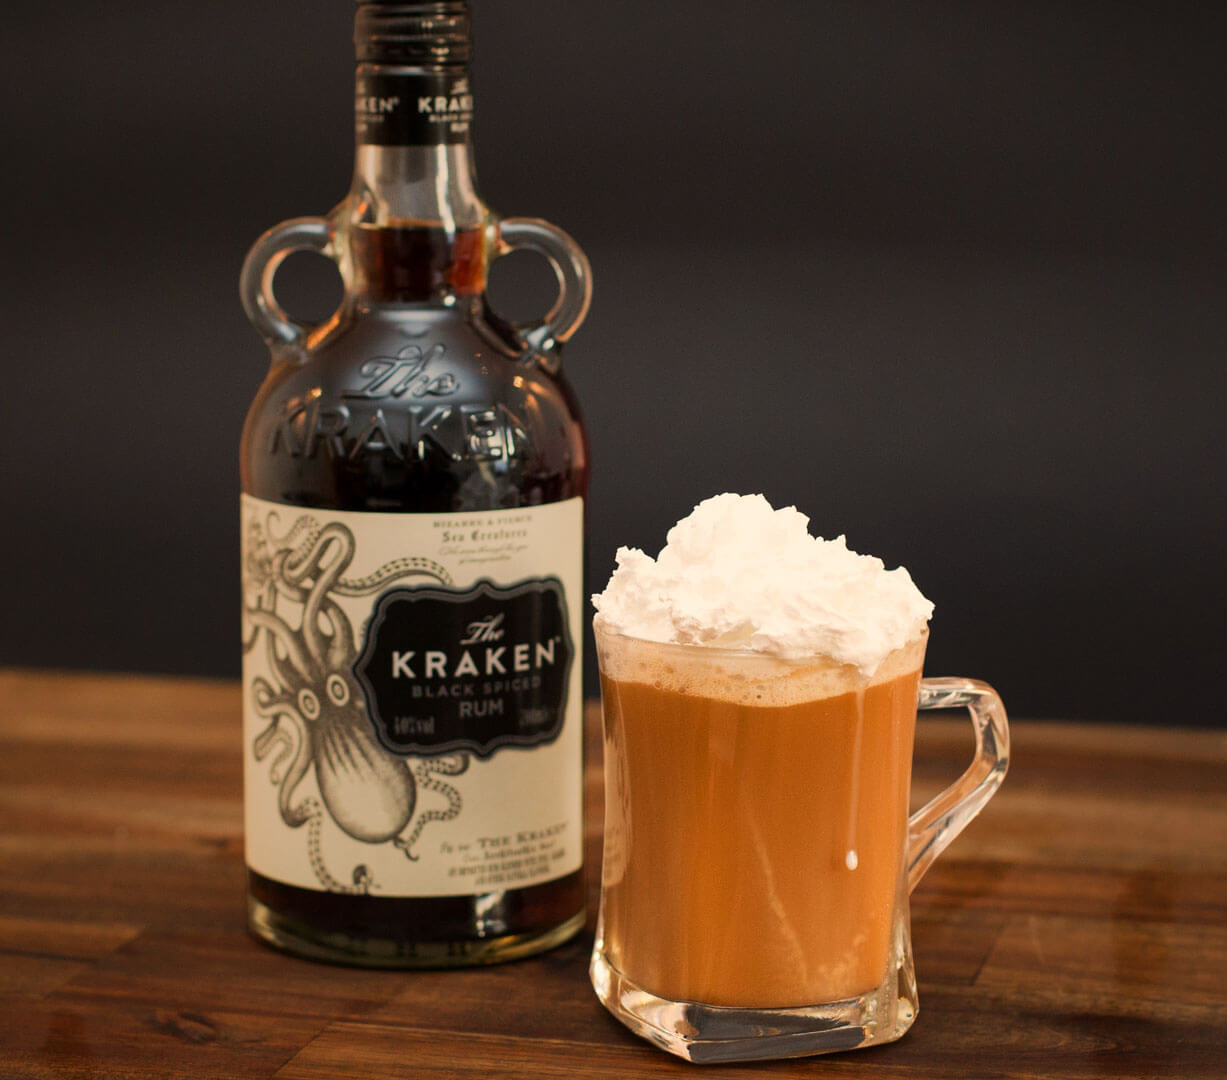 cocktails krakaccino by kraken rum f r weihnachten. Black Bedroom Furniture Sets. Home Design Ideas